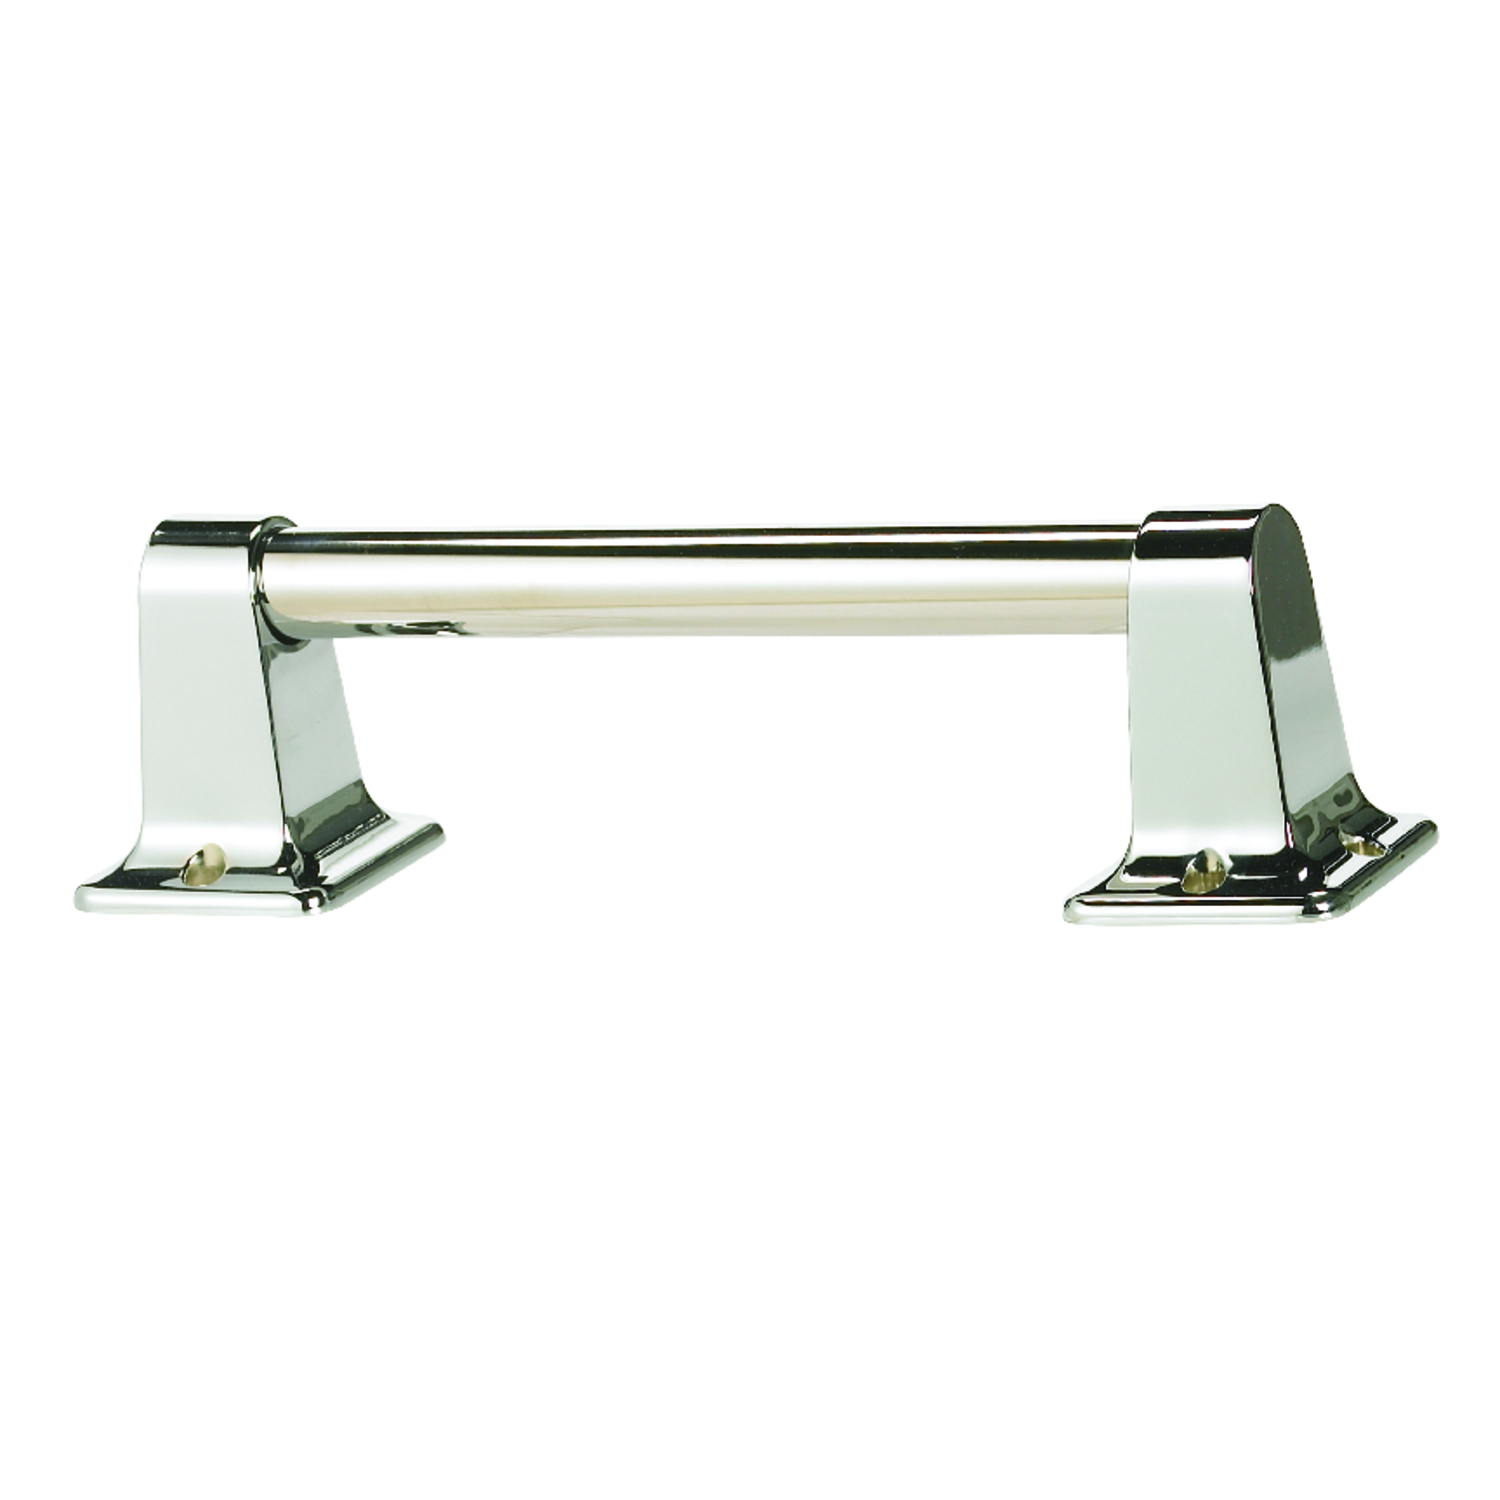 Delta  Polished Chrome  Chrome  Grab Bar  2-3/8 in. H x 3 in. W x 9 in. L